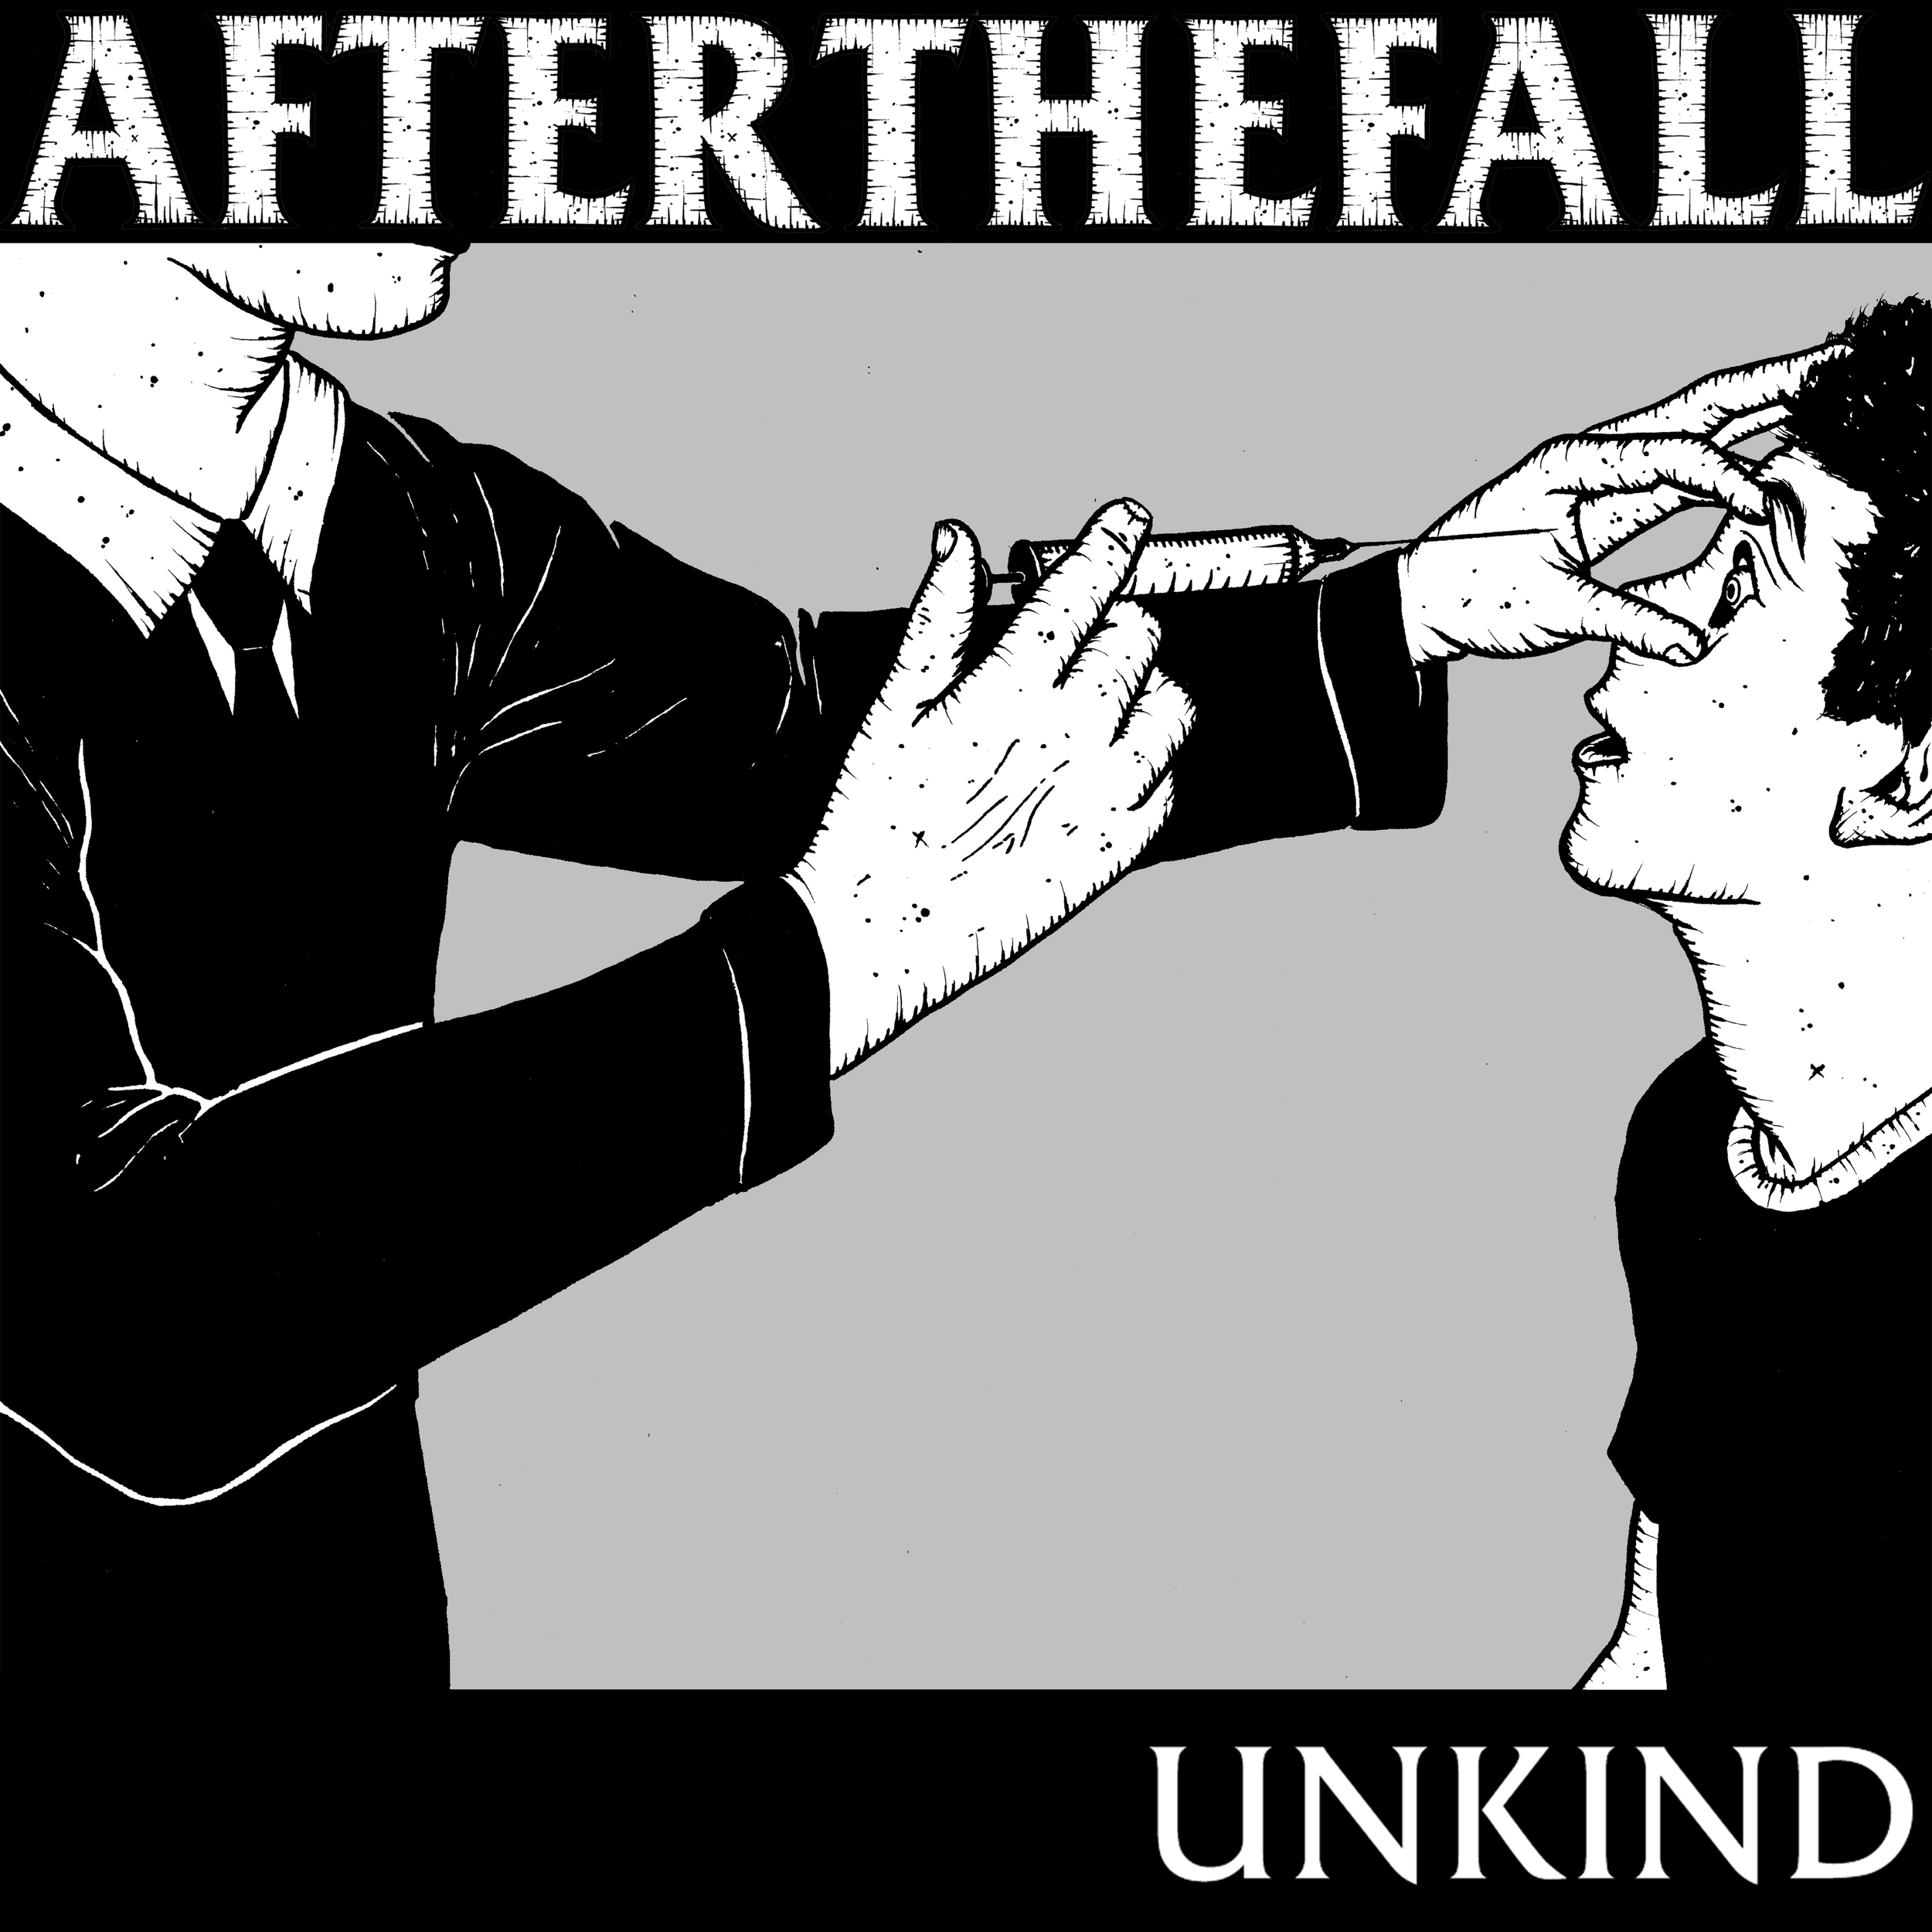 Unkind (2013)